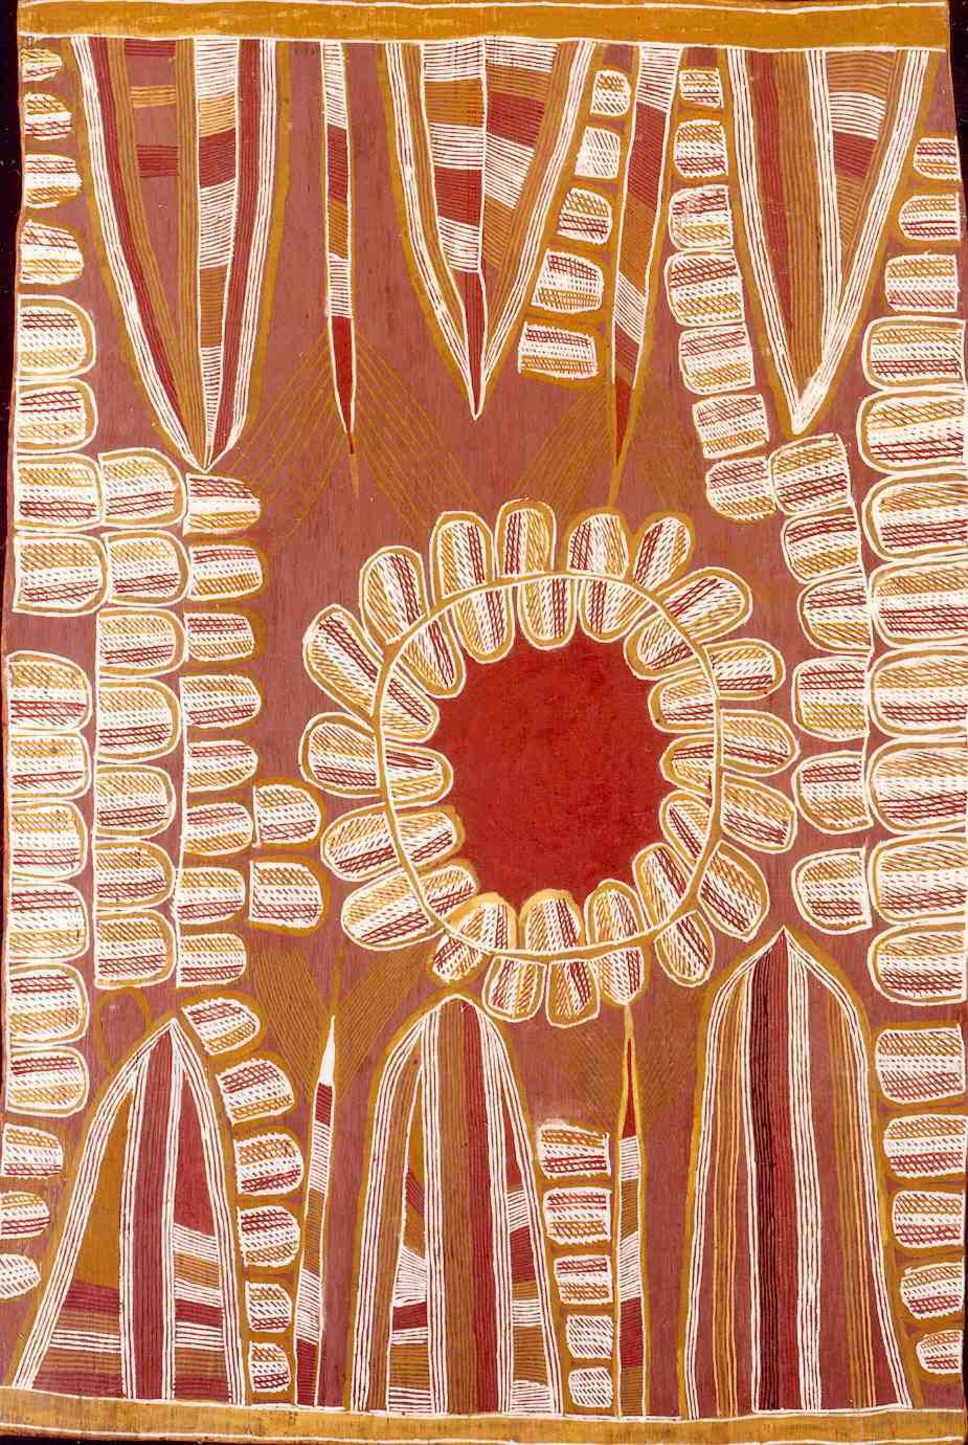 Linda Namiyal Bopirri, 1990, Yolngu Matha (Durrurna clan, Dhuwa moiety), Oyster ('Oyster Dreaming', 'Wayanaka') Bank, Ochre on Bark, 64x95cm.     © the artist's estate, licensed by Aboriginal Artists Agency Ltd; Burkhardt-Felder Collection, Switzerland.